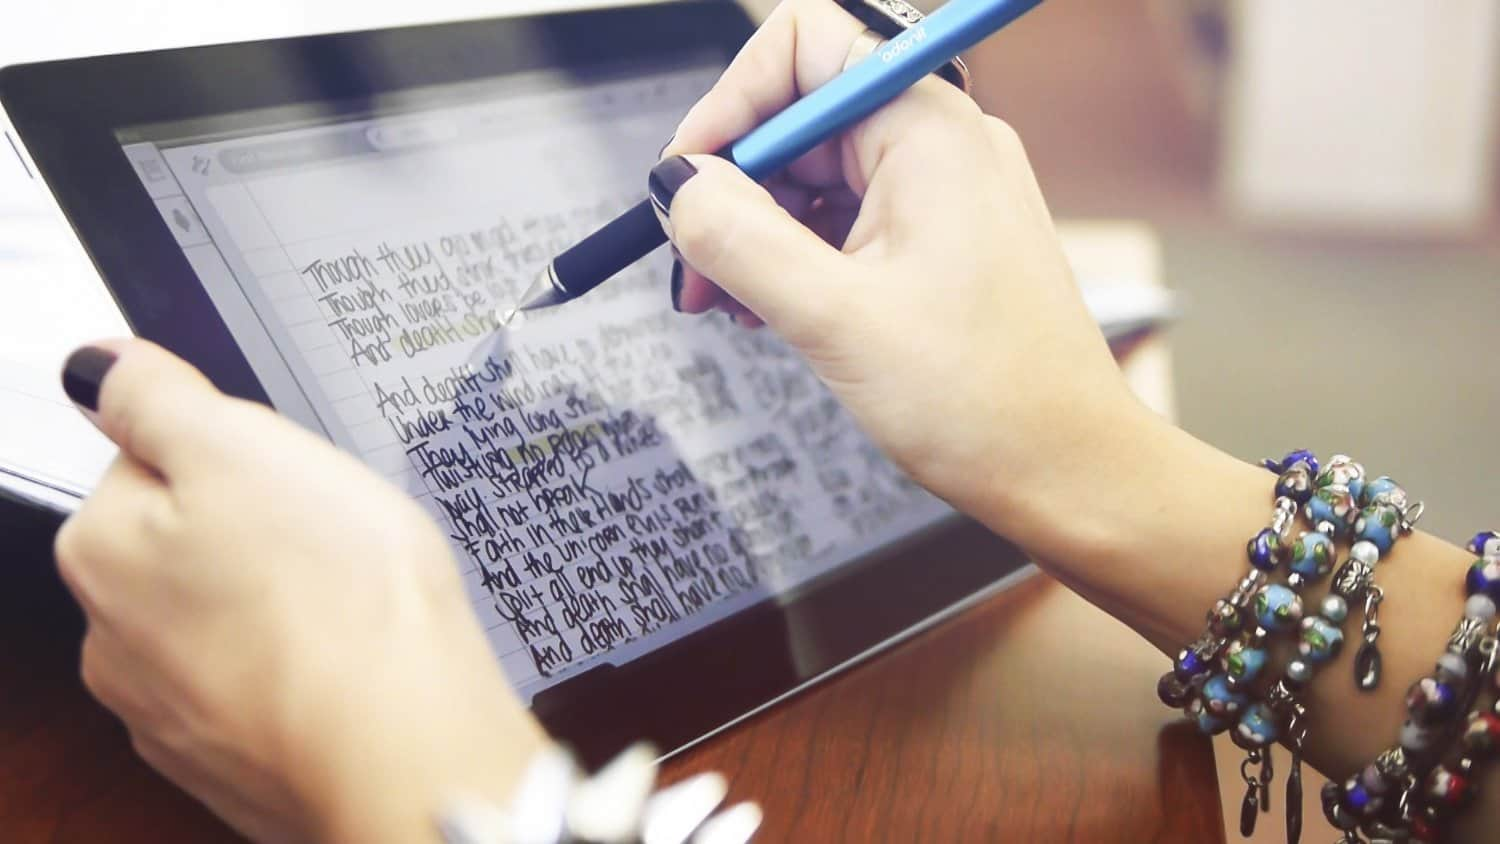 Adonit Jot Pro Fine Point Stylus Write Notes on iPad and Tablet